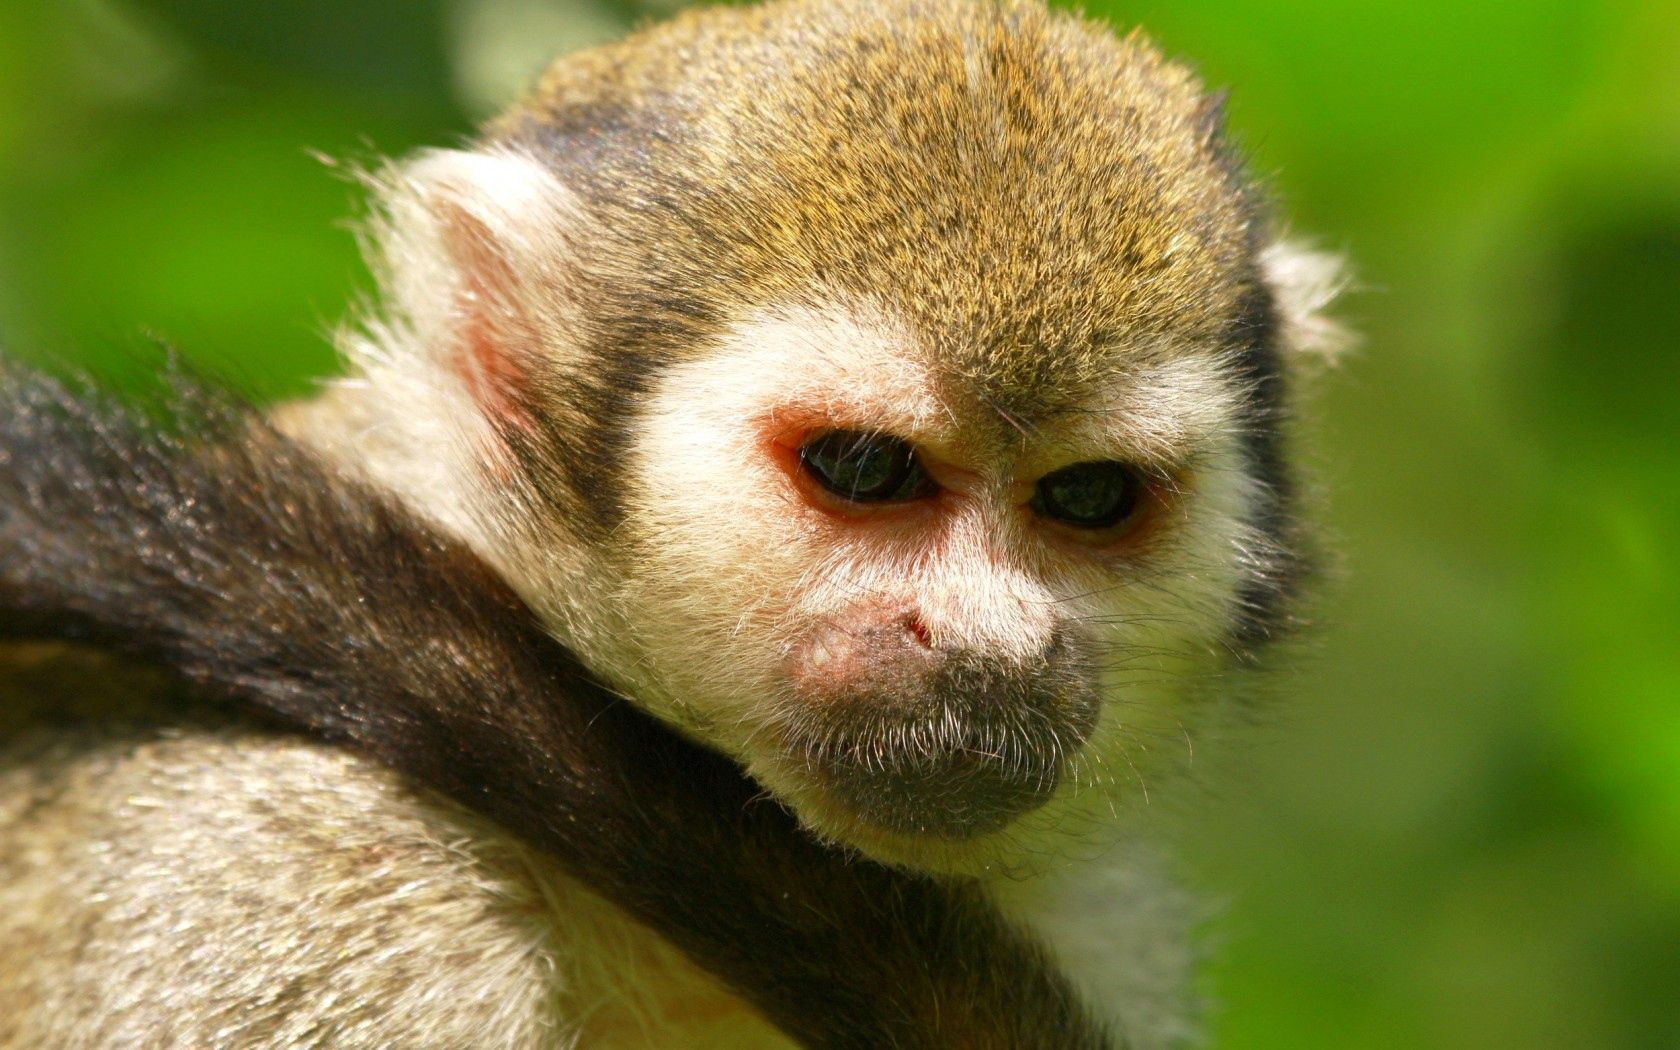 54376 download wallpaper Animals, Monkey, Muzzle, Eyes, Sight, Opinion, Tail, Background screensavers and pictures for free